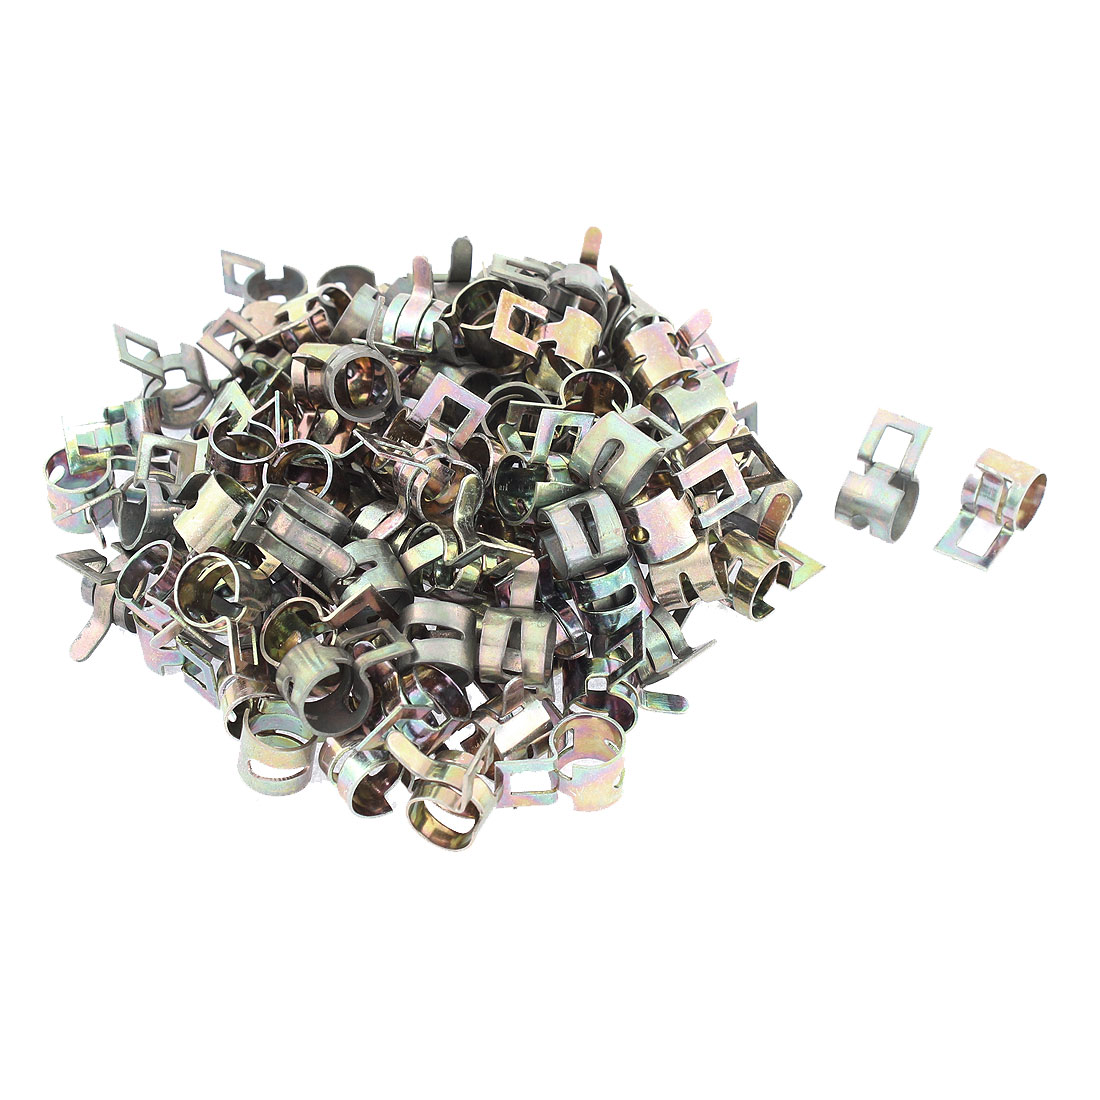 100 Pcs Spring Clip for Fuel Silicone Vacuum Hose Clamp